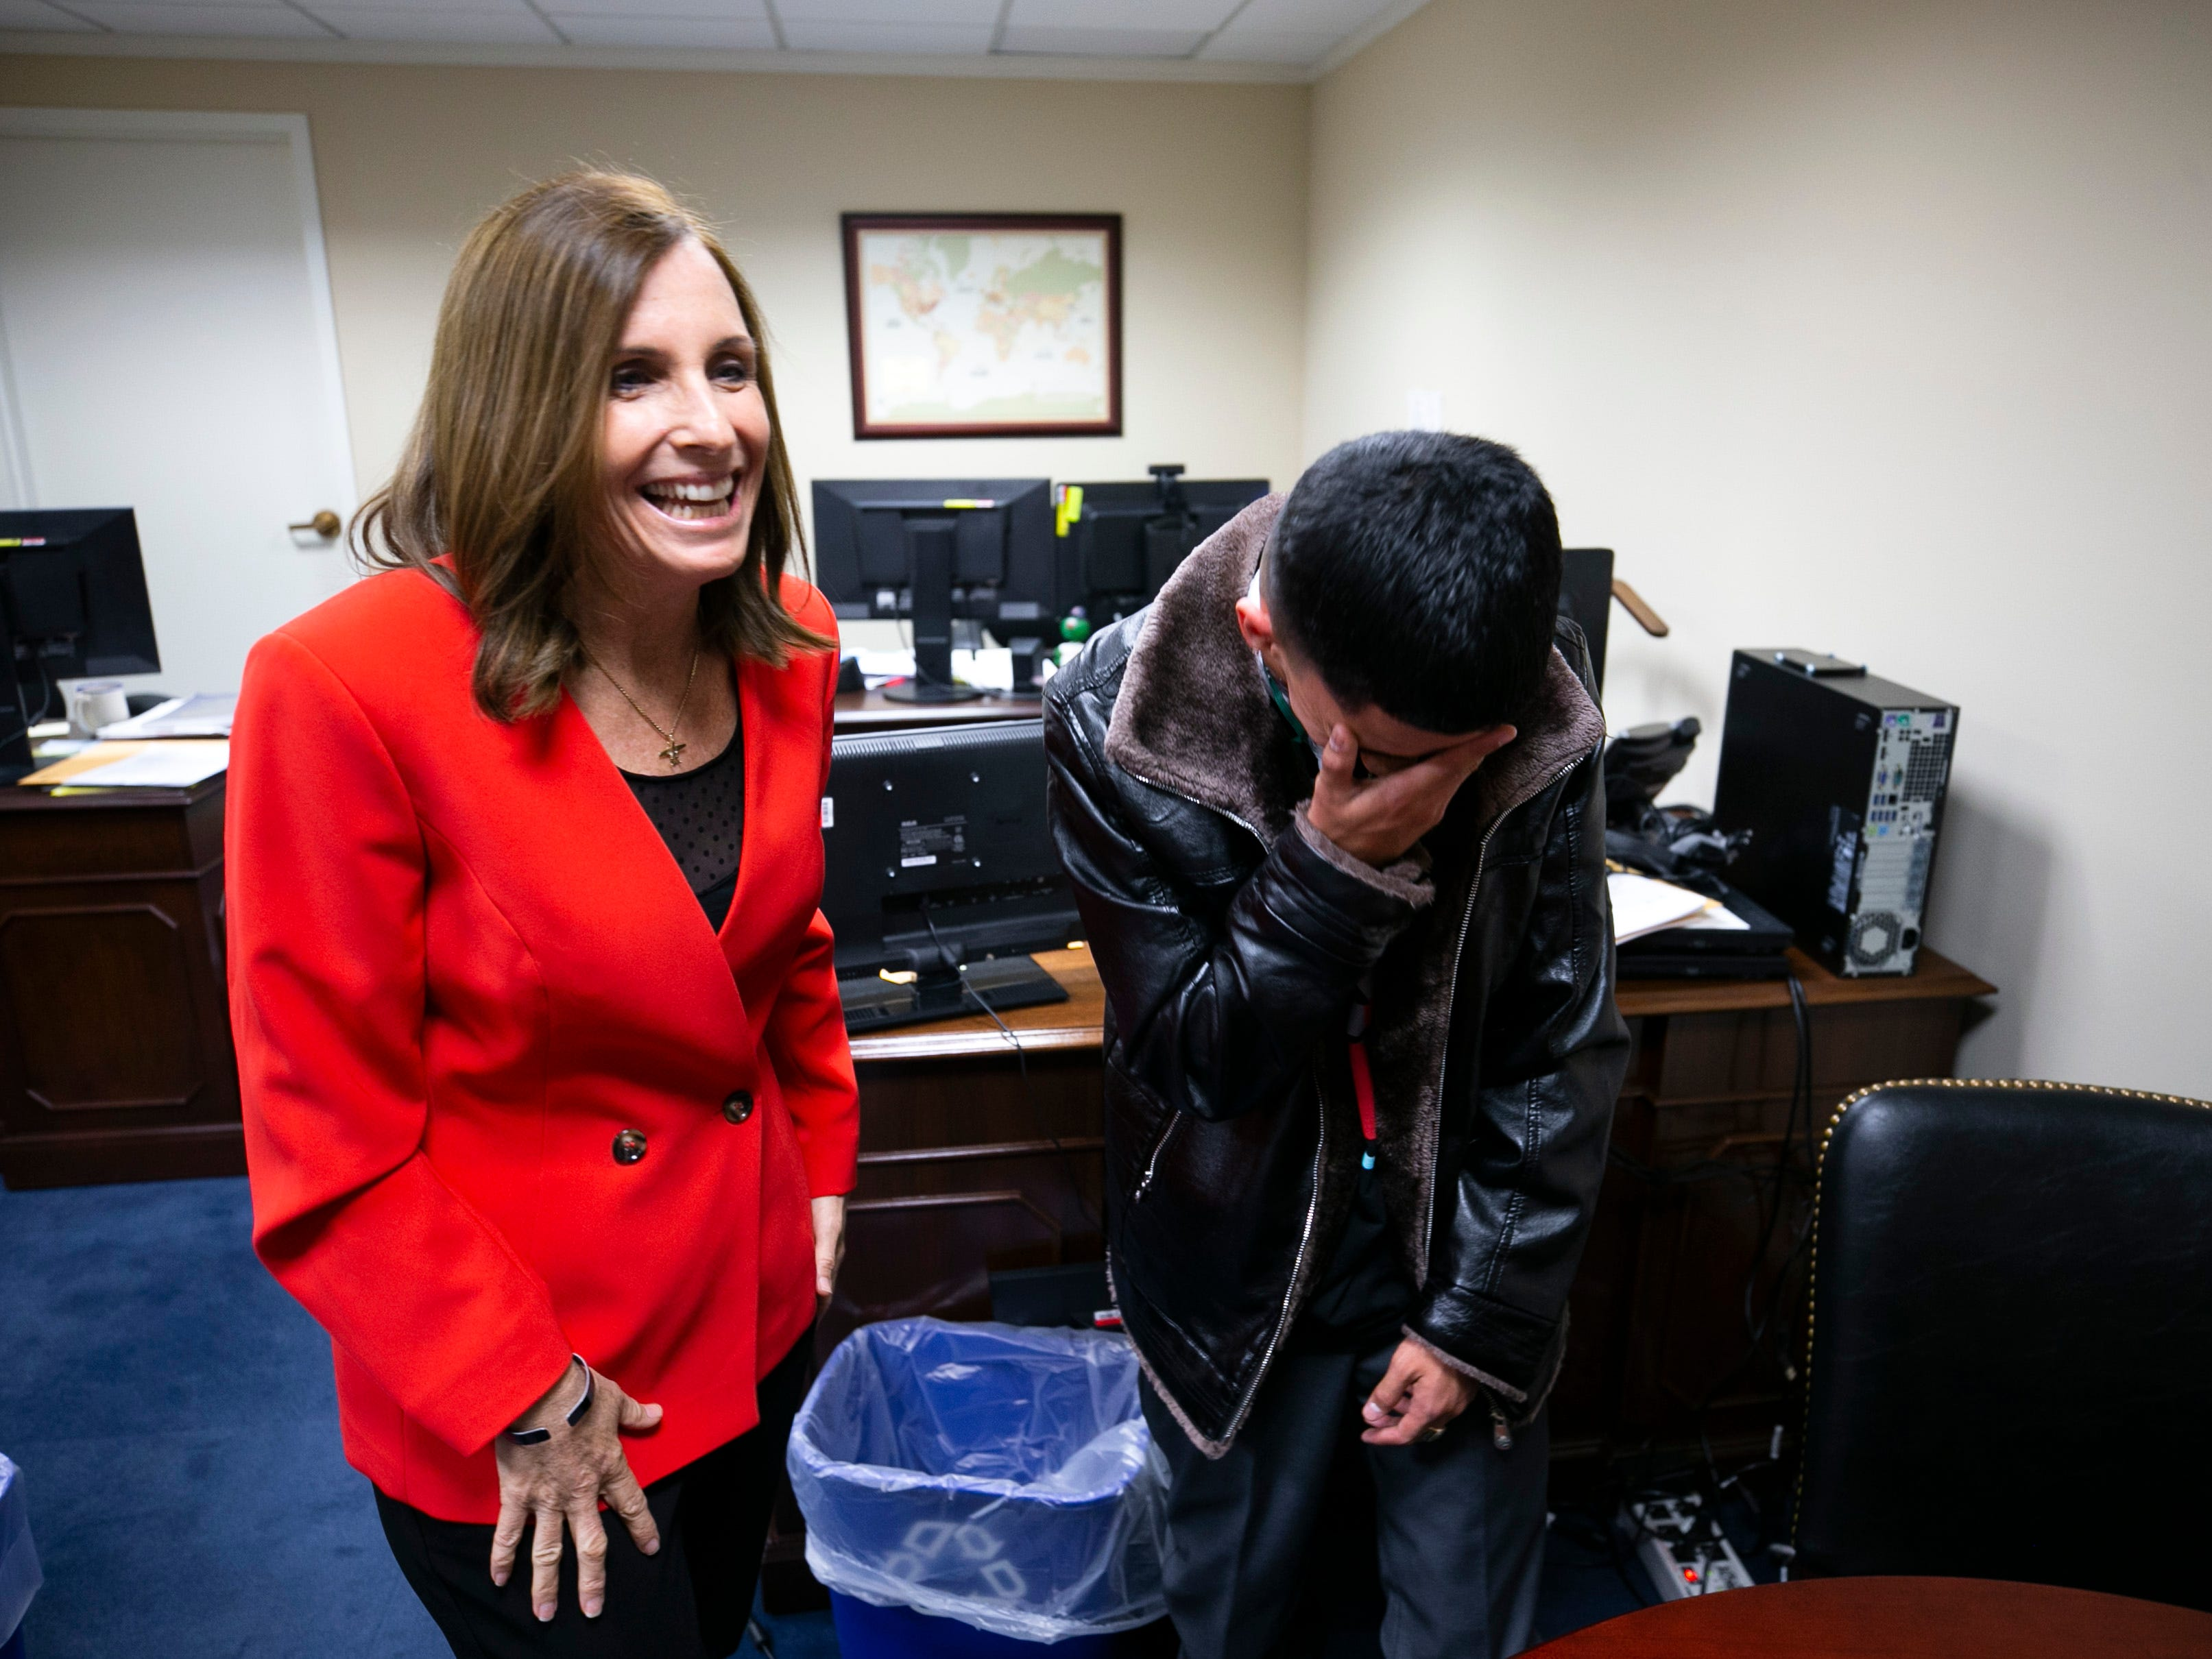 U.S. Senator Martha McSally, R-Ariz. talks with Isaiah Acosta, a 19-year-old rapper from Phoenix, who was born without a lower jaw, at the McSally's office at the Dirksen Senate Office Building in Washington DC on February 5, 2019. Acosta will be Senator McSally's guest tonight at the State of the Union.